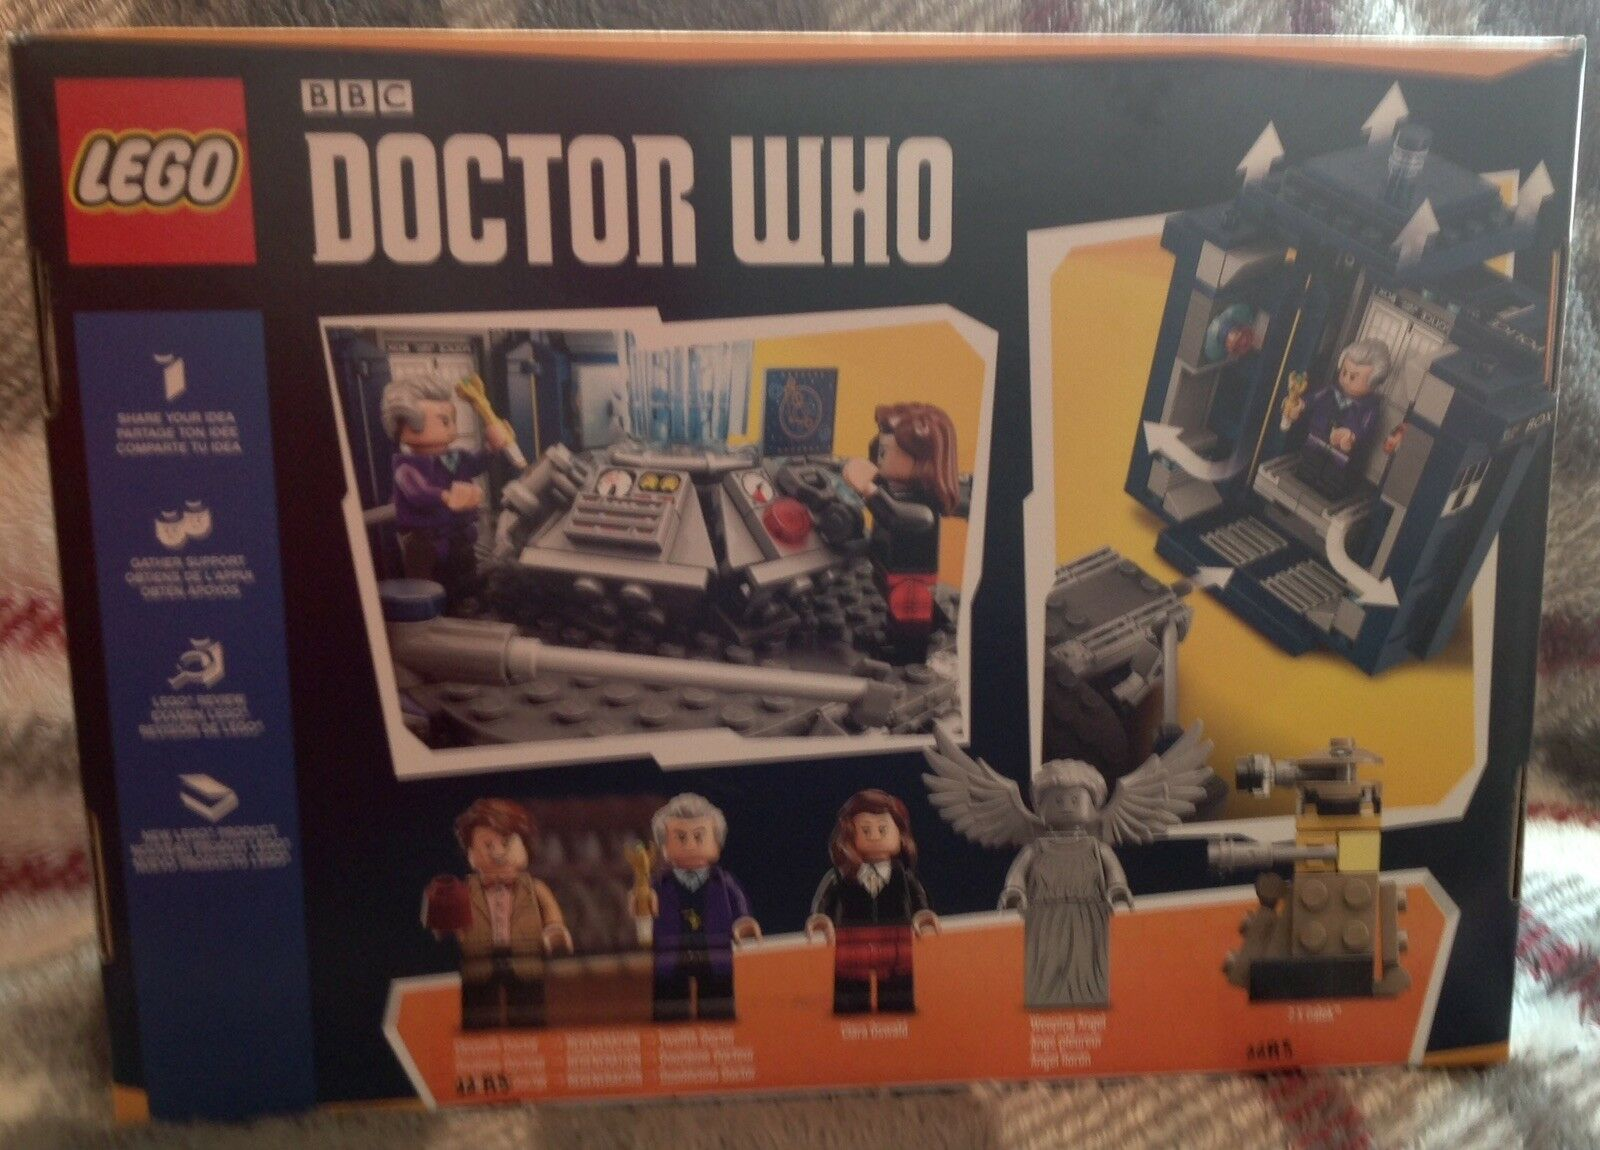 NEW LEGO Ideas Doctor Who Building Toy Set TARDIS Dalek Weeping Angel 21304 NIB